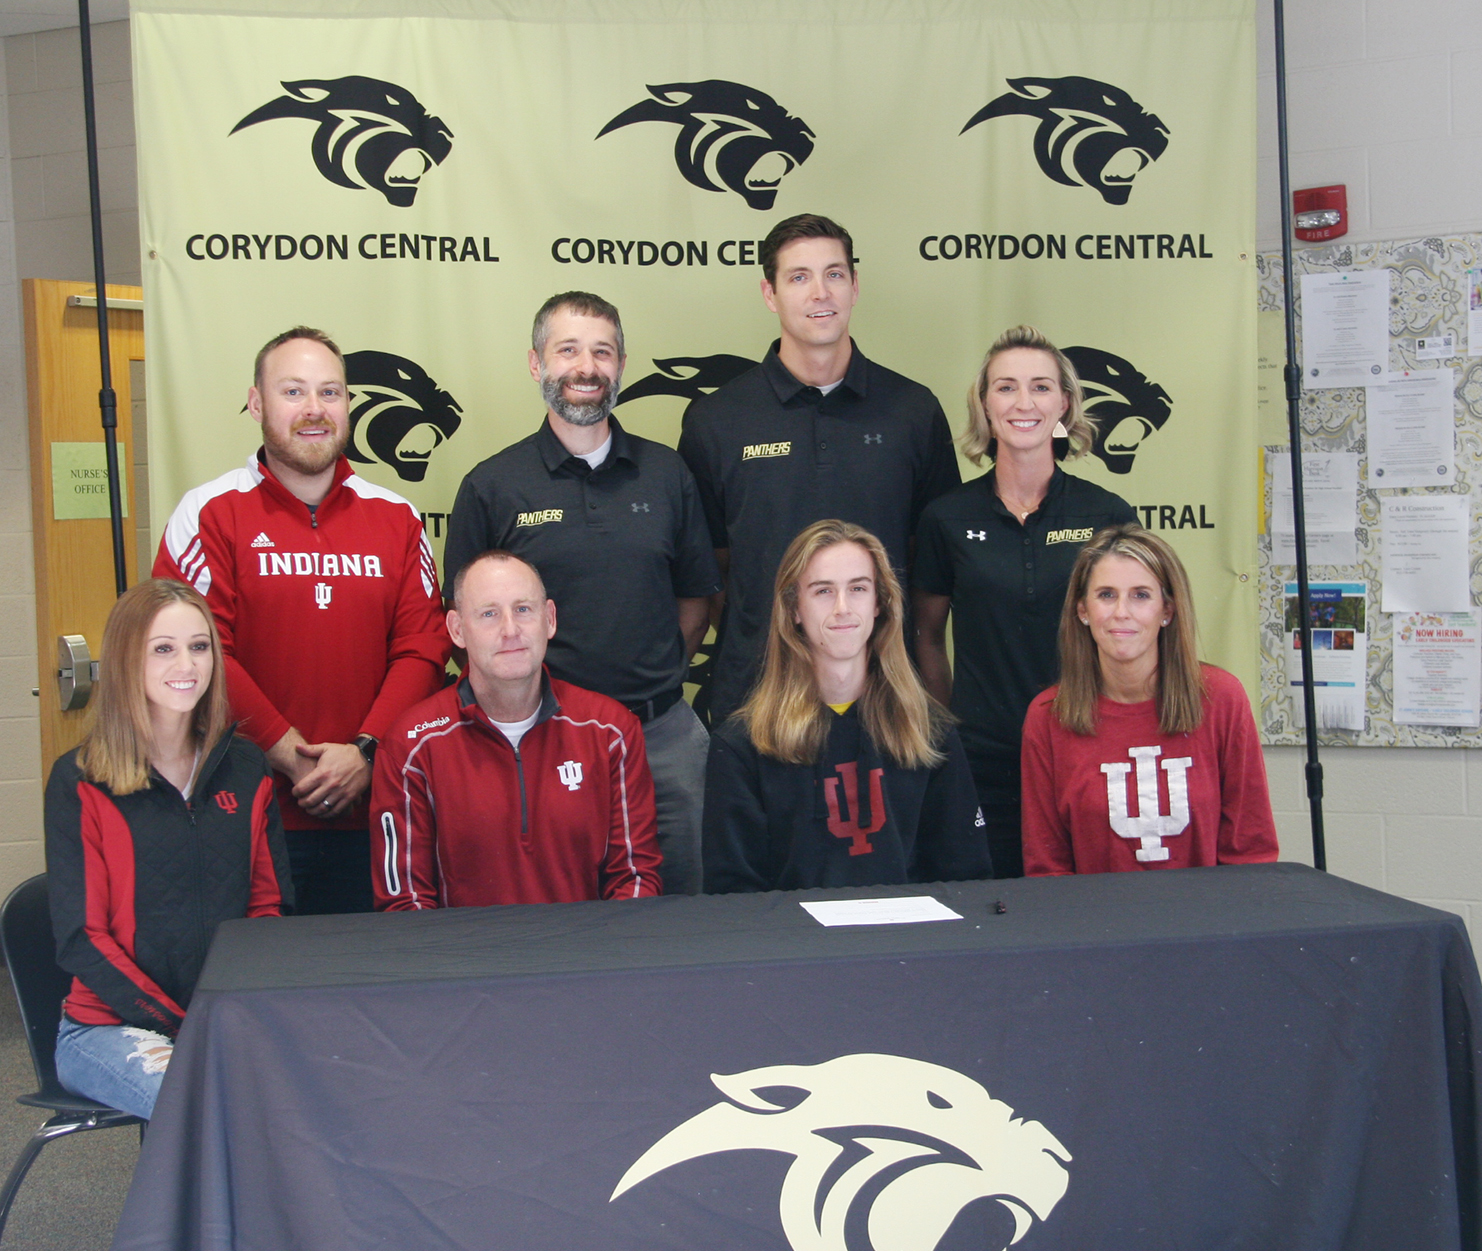 Marshall to run X-C for Hoosiers